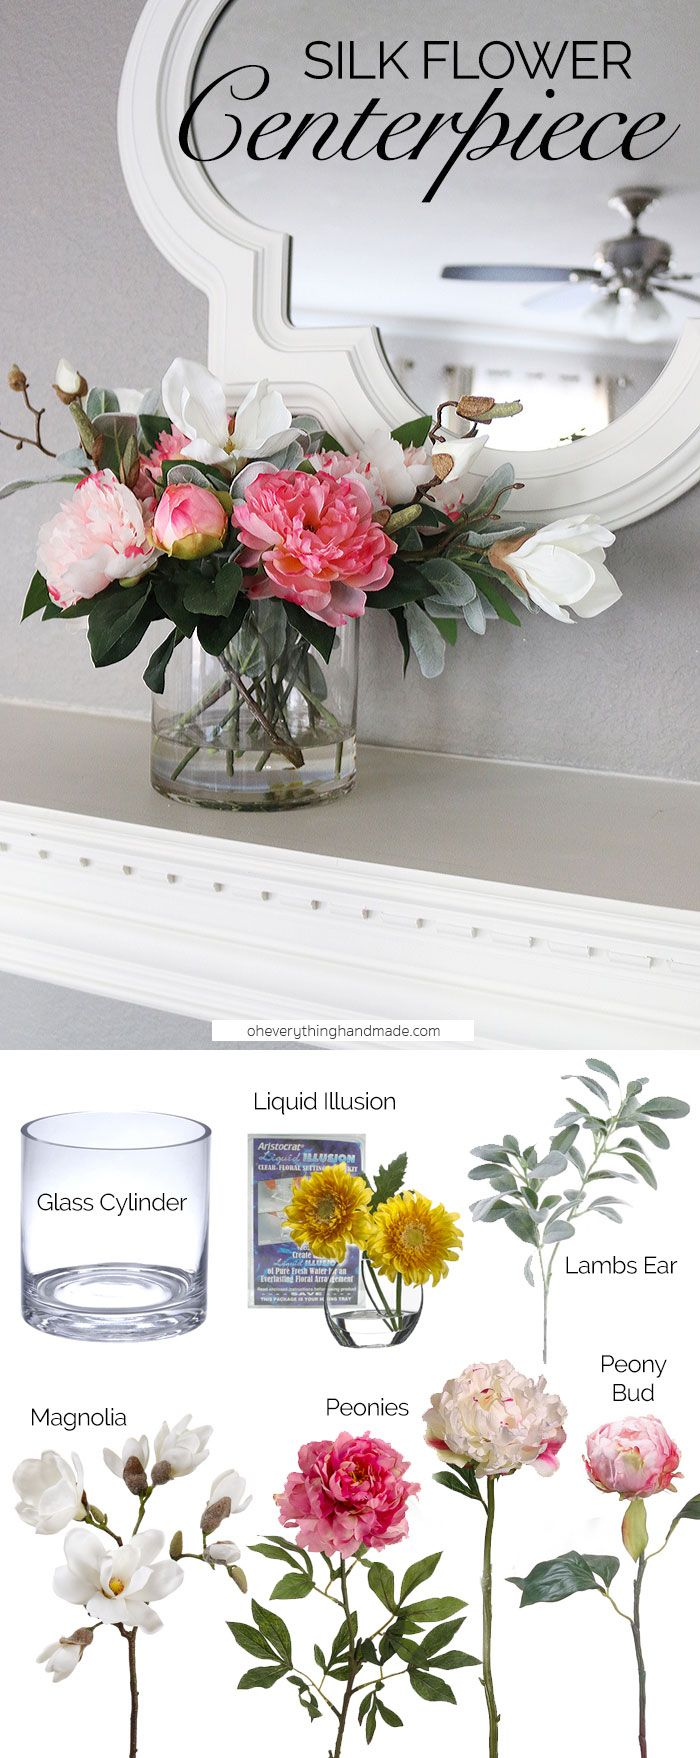 Make A Gorgeous Silk Flower Arrangement For Your Mantle Or Dining Table  With Faux Flowers And Liquid Illusion From Afloral.com.